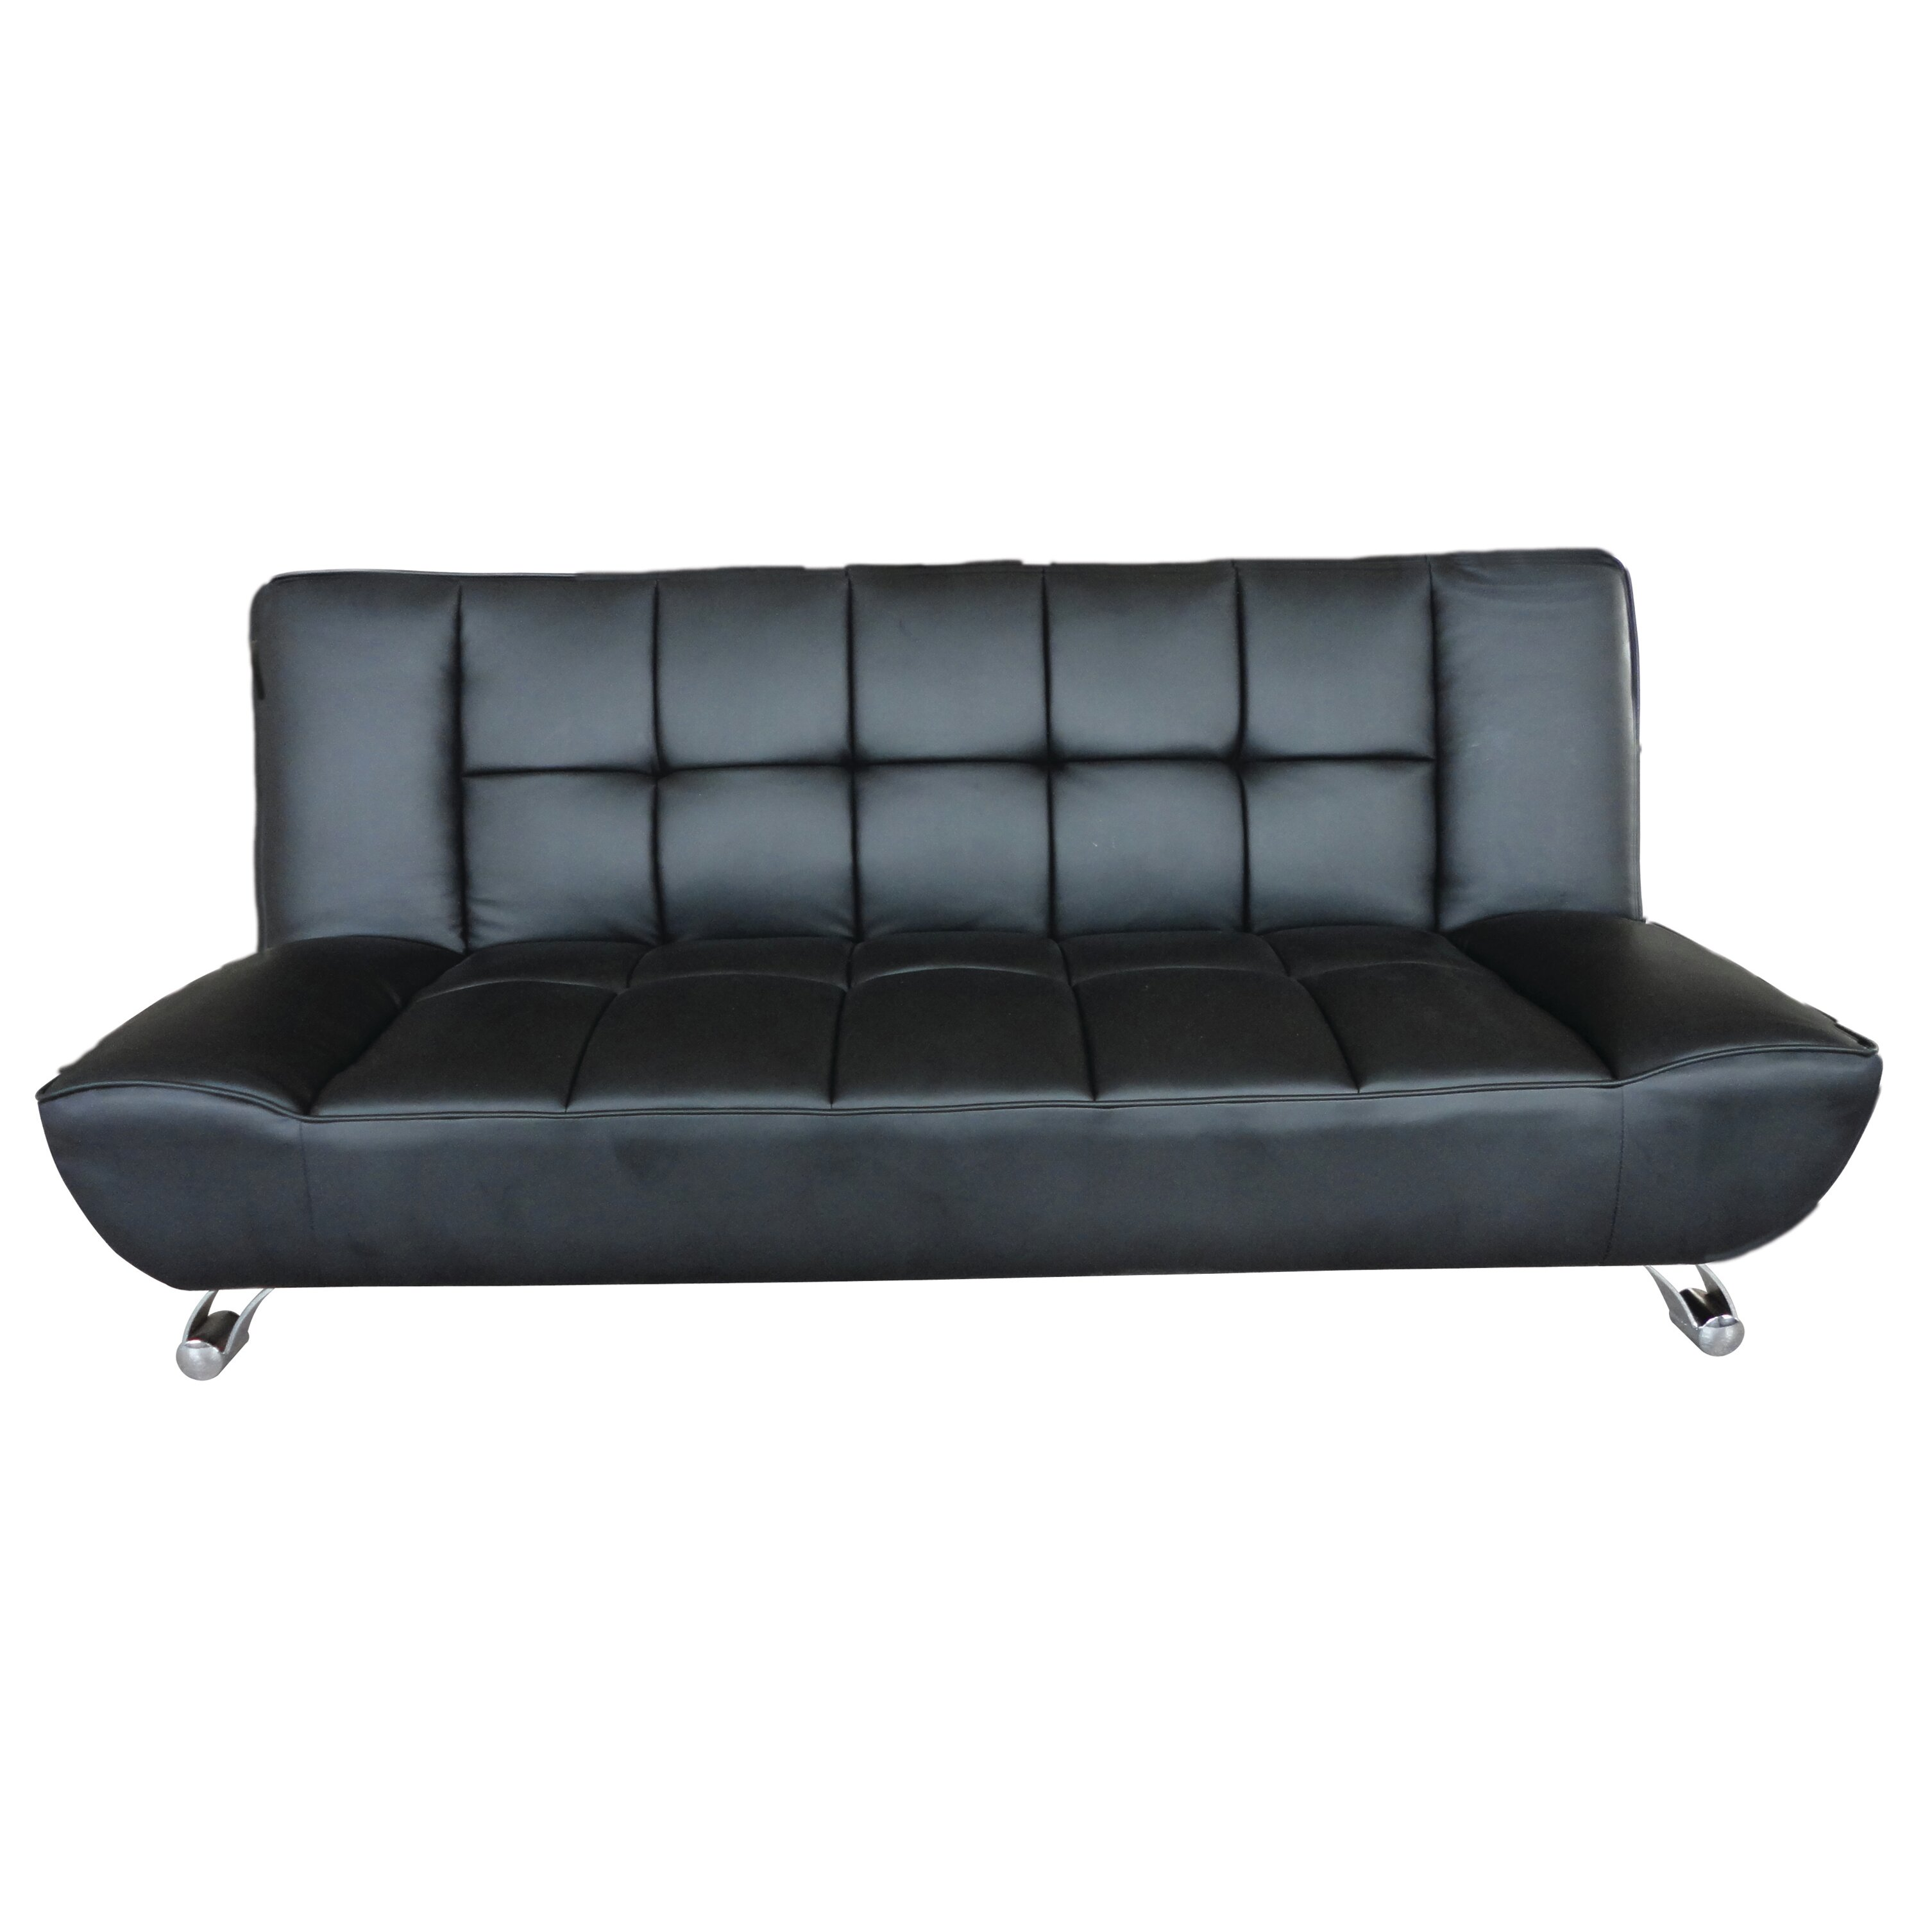 all home vogue 3 seater clic clac sofa bed reviews wayfair uk. Black Bedroom Furniture Sets. Home Design Ideas